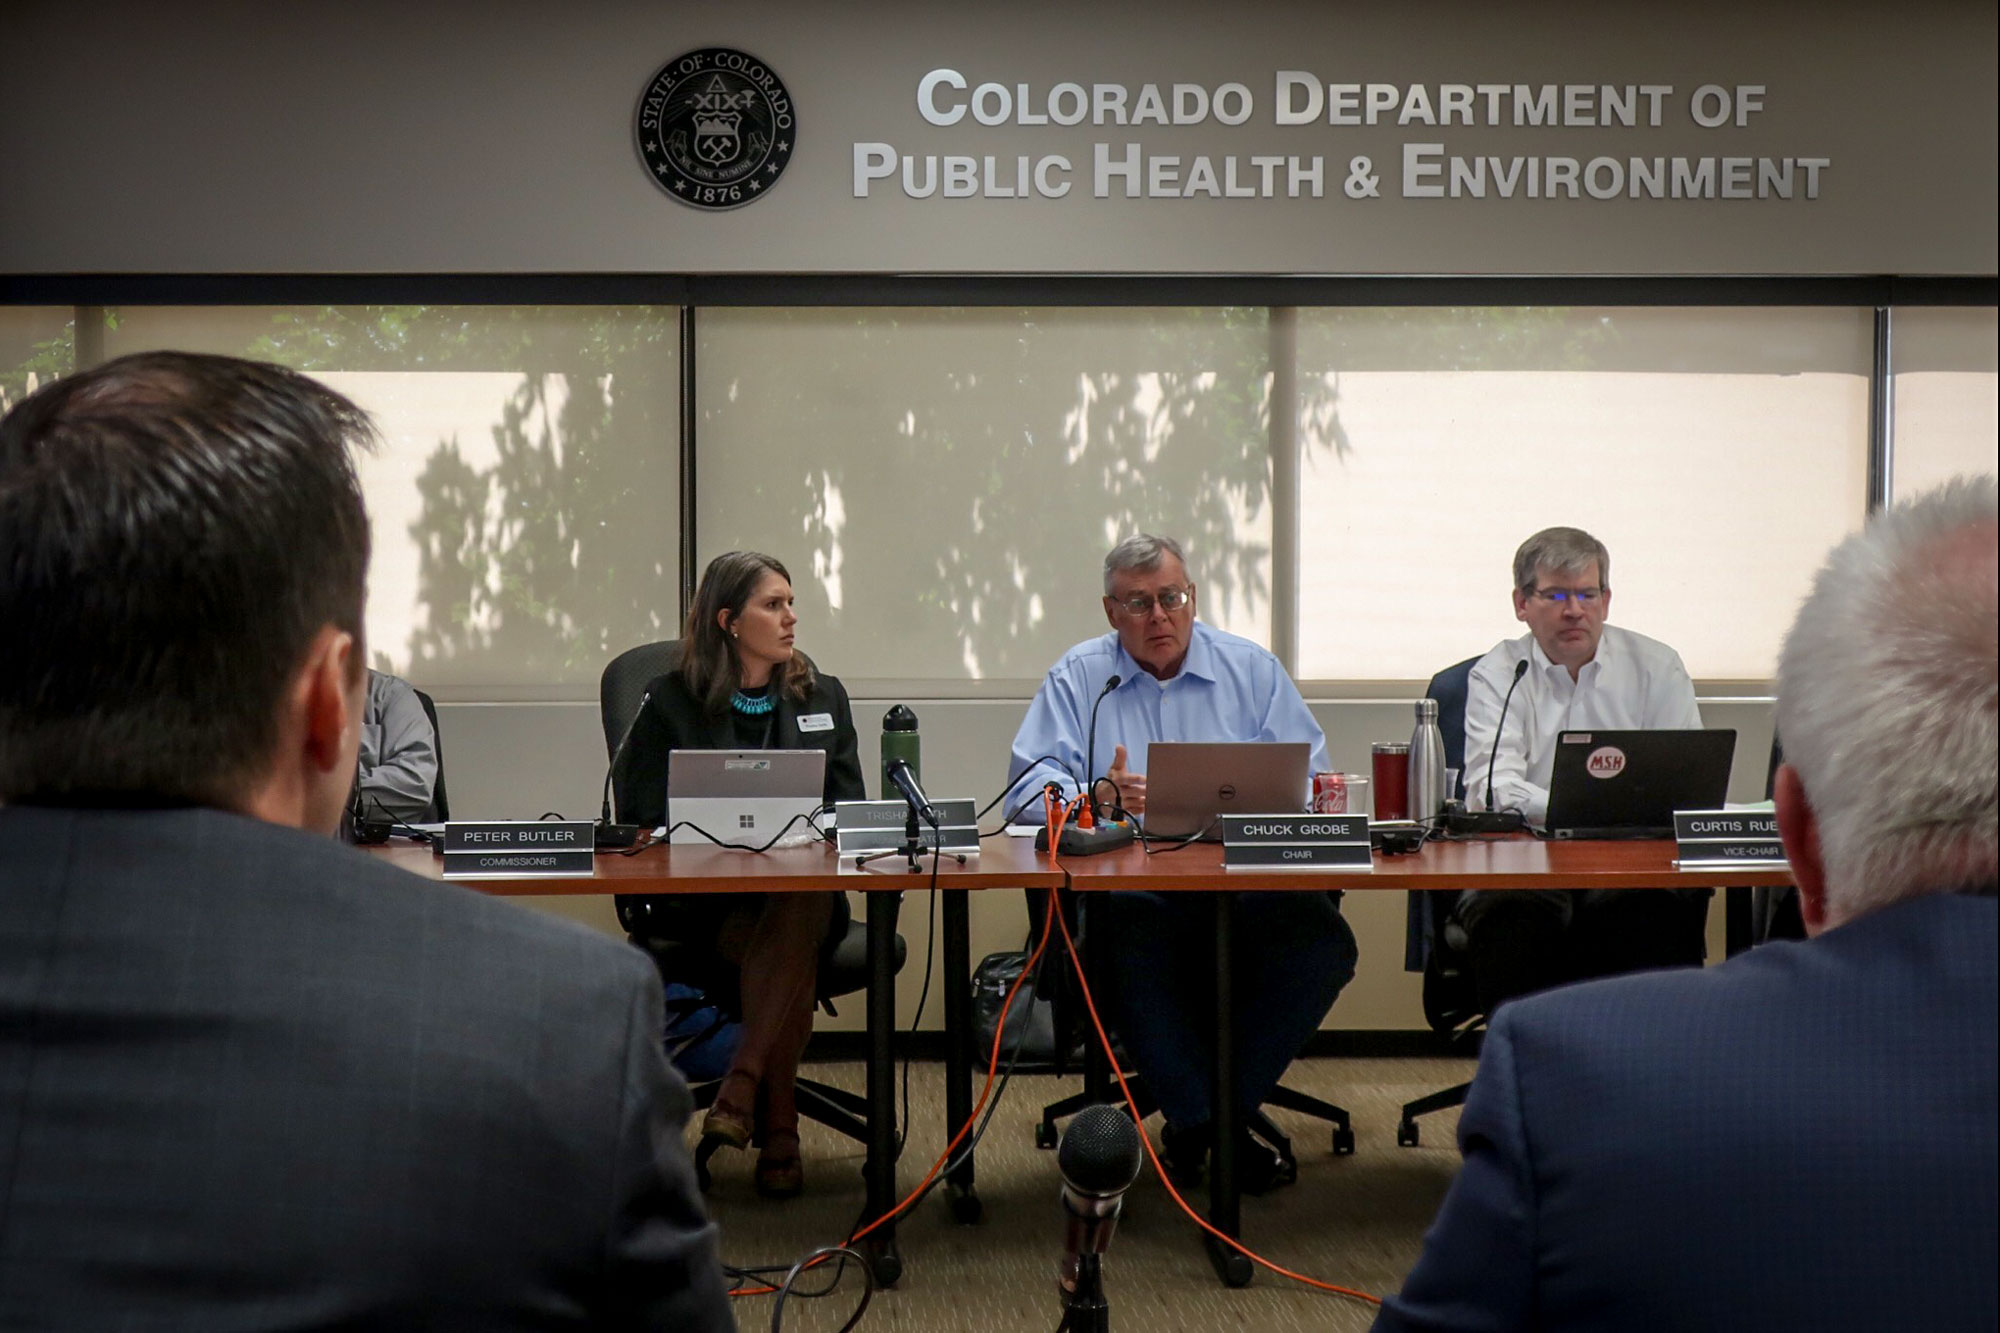 The Colorado Air Quality Control Commission listens to testimony from stakeholders before voting to approve the Zero-Emission Vehicle program, Aug. 15, 2019.